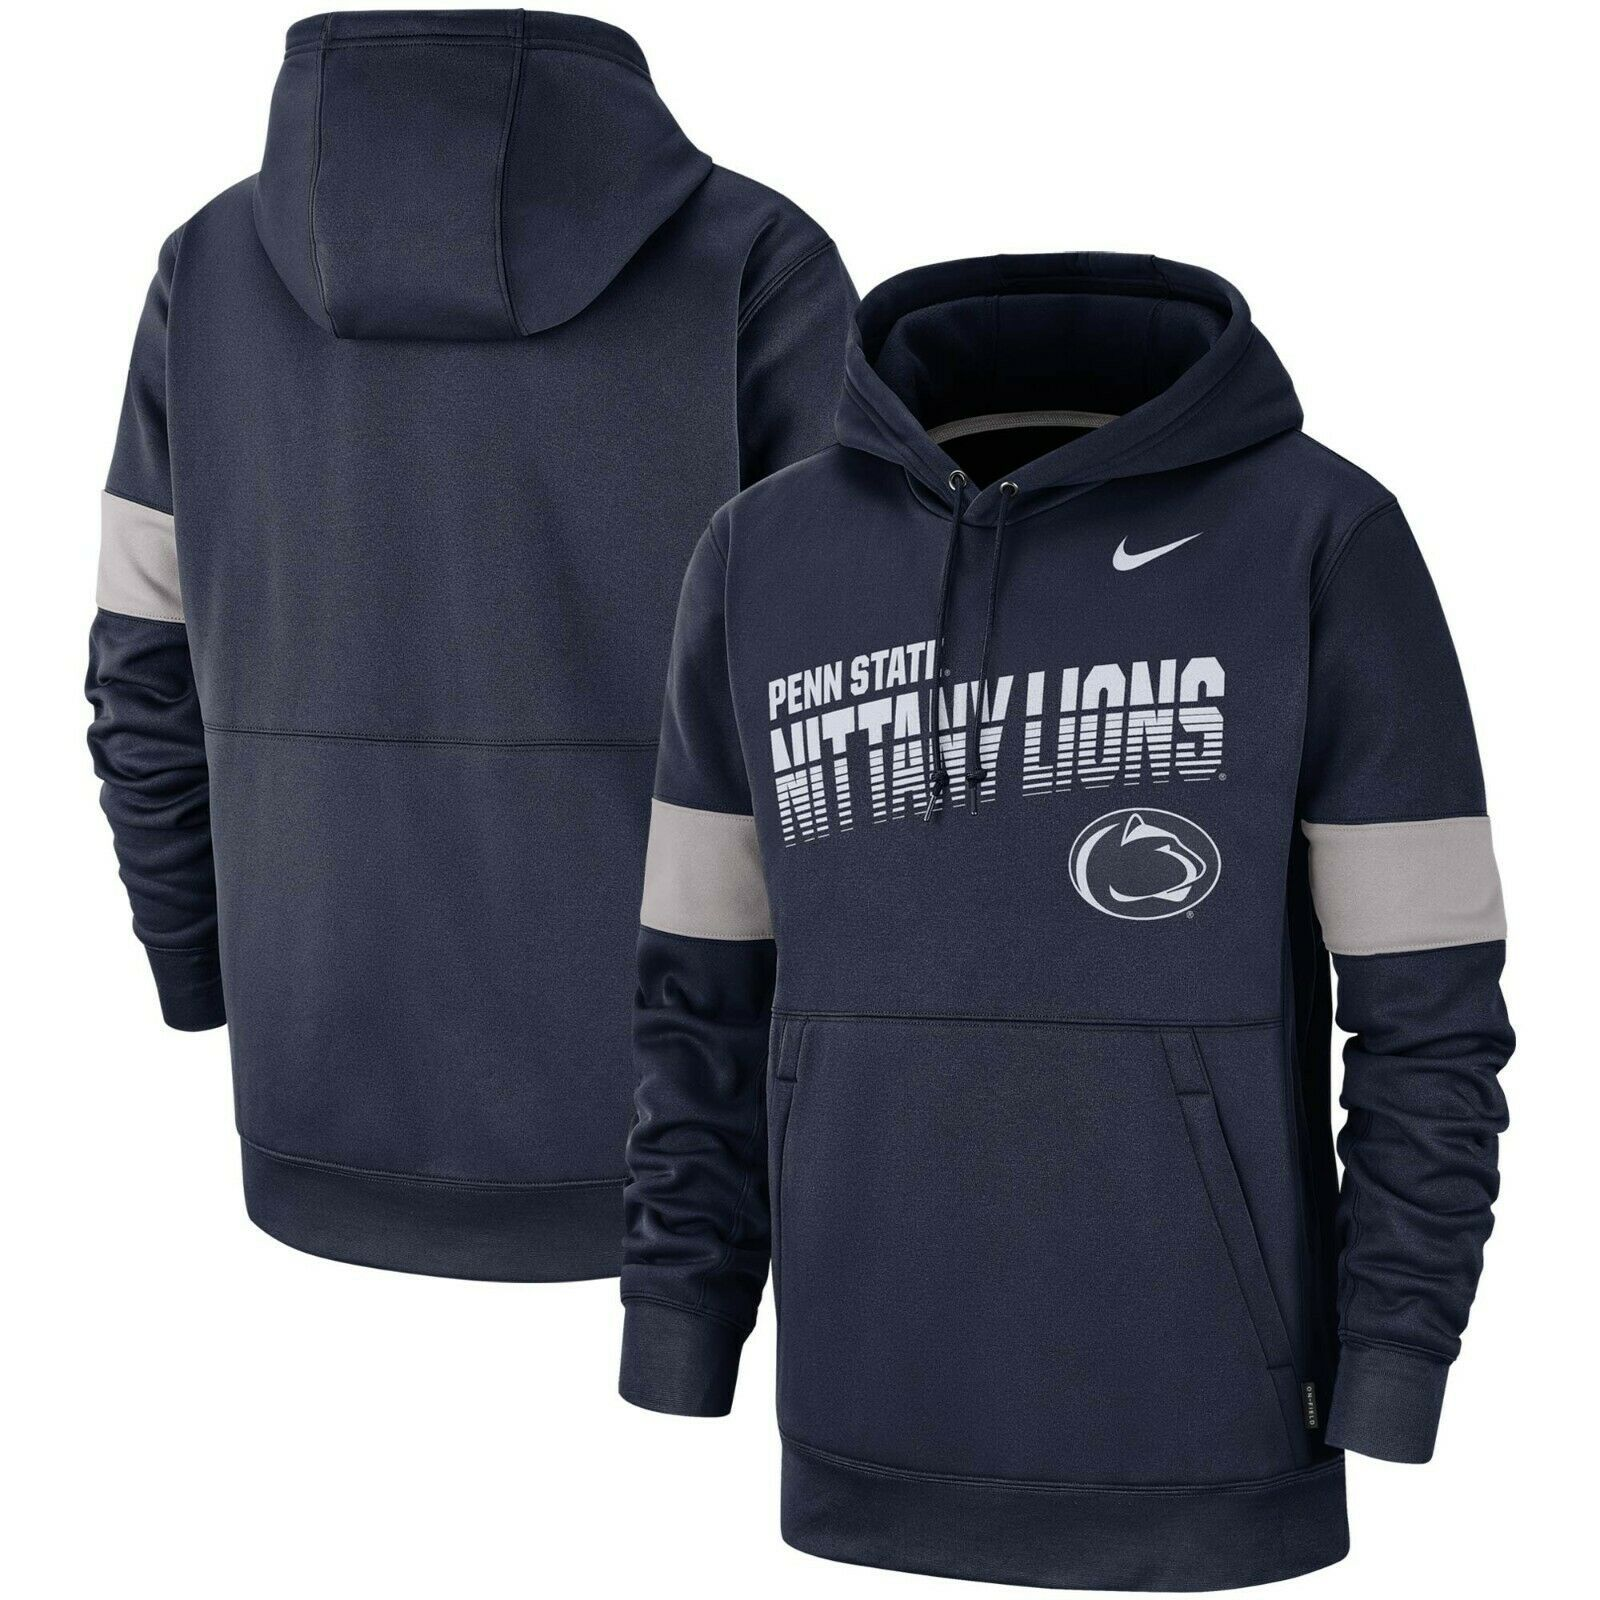 Primary image for Penn State Nittany Lions Mens Nike Sideline Therma-Fit Performance Hoodie - NWT